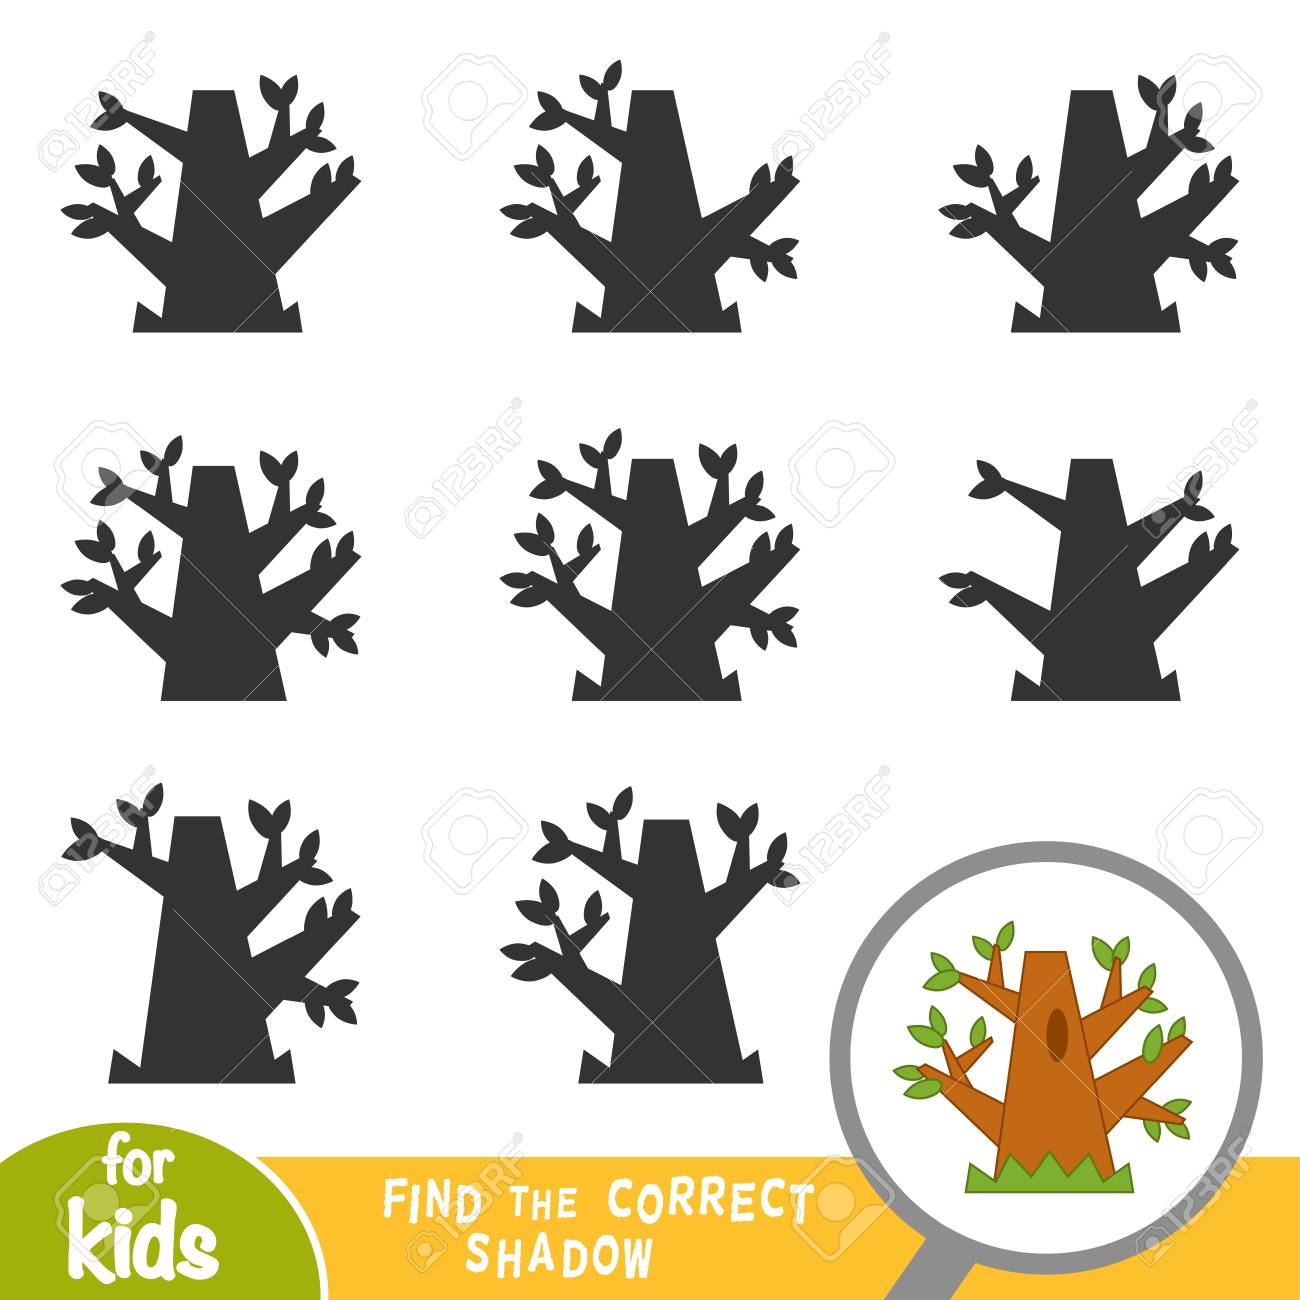 Find the correct shadow, education game for children, Oak tree - 126529678